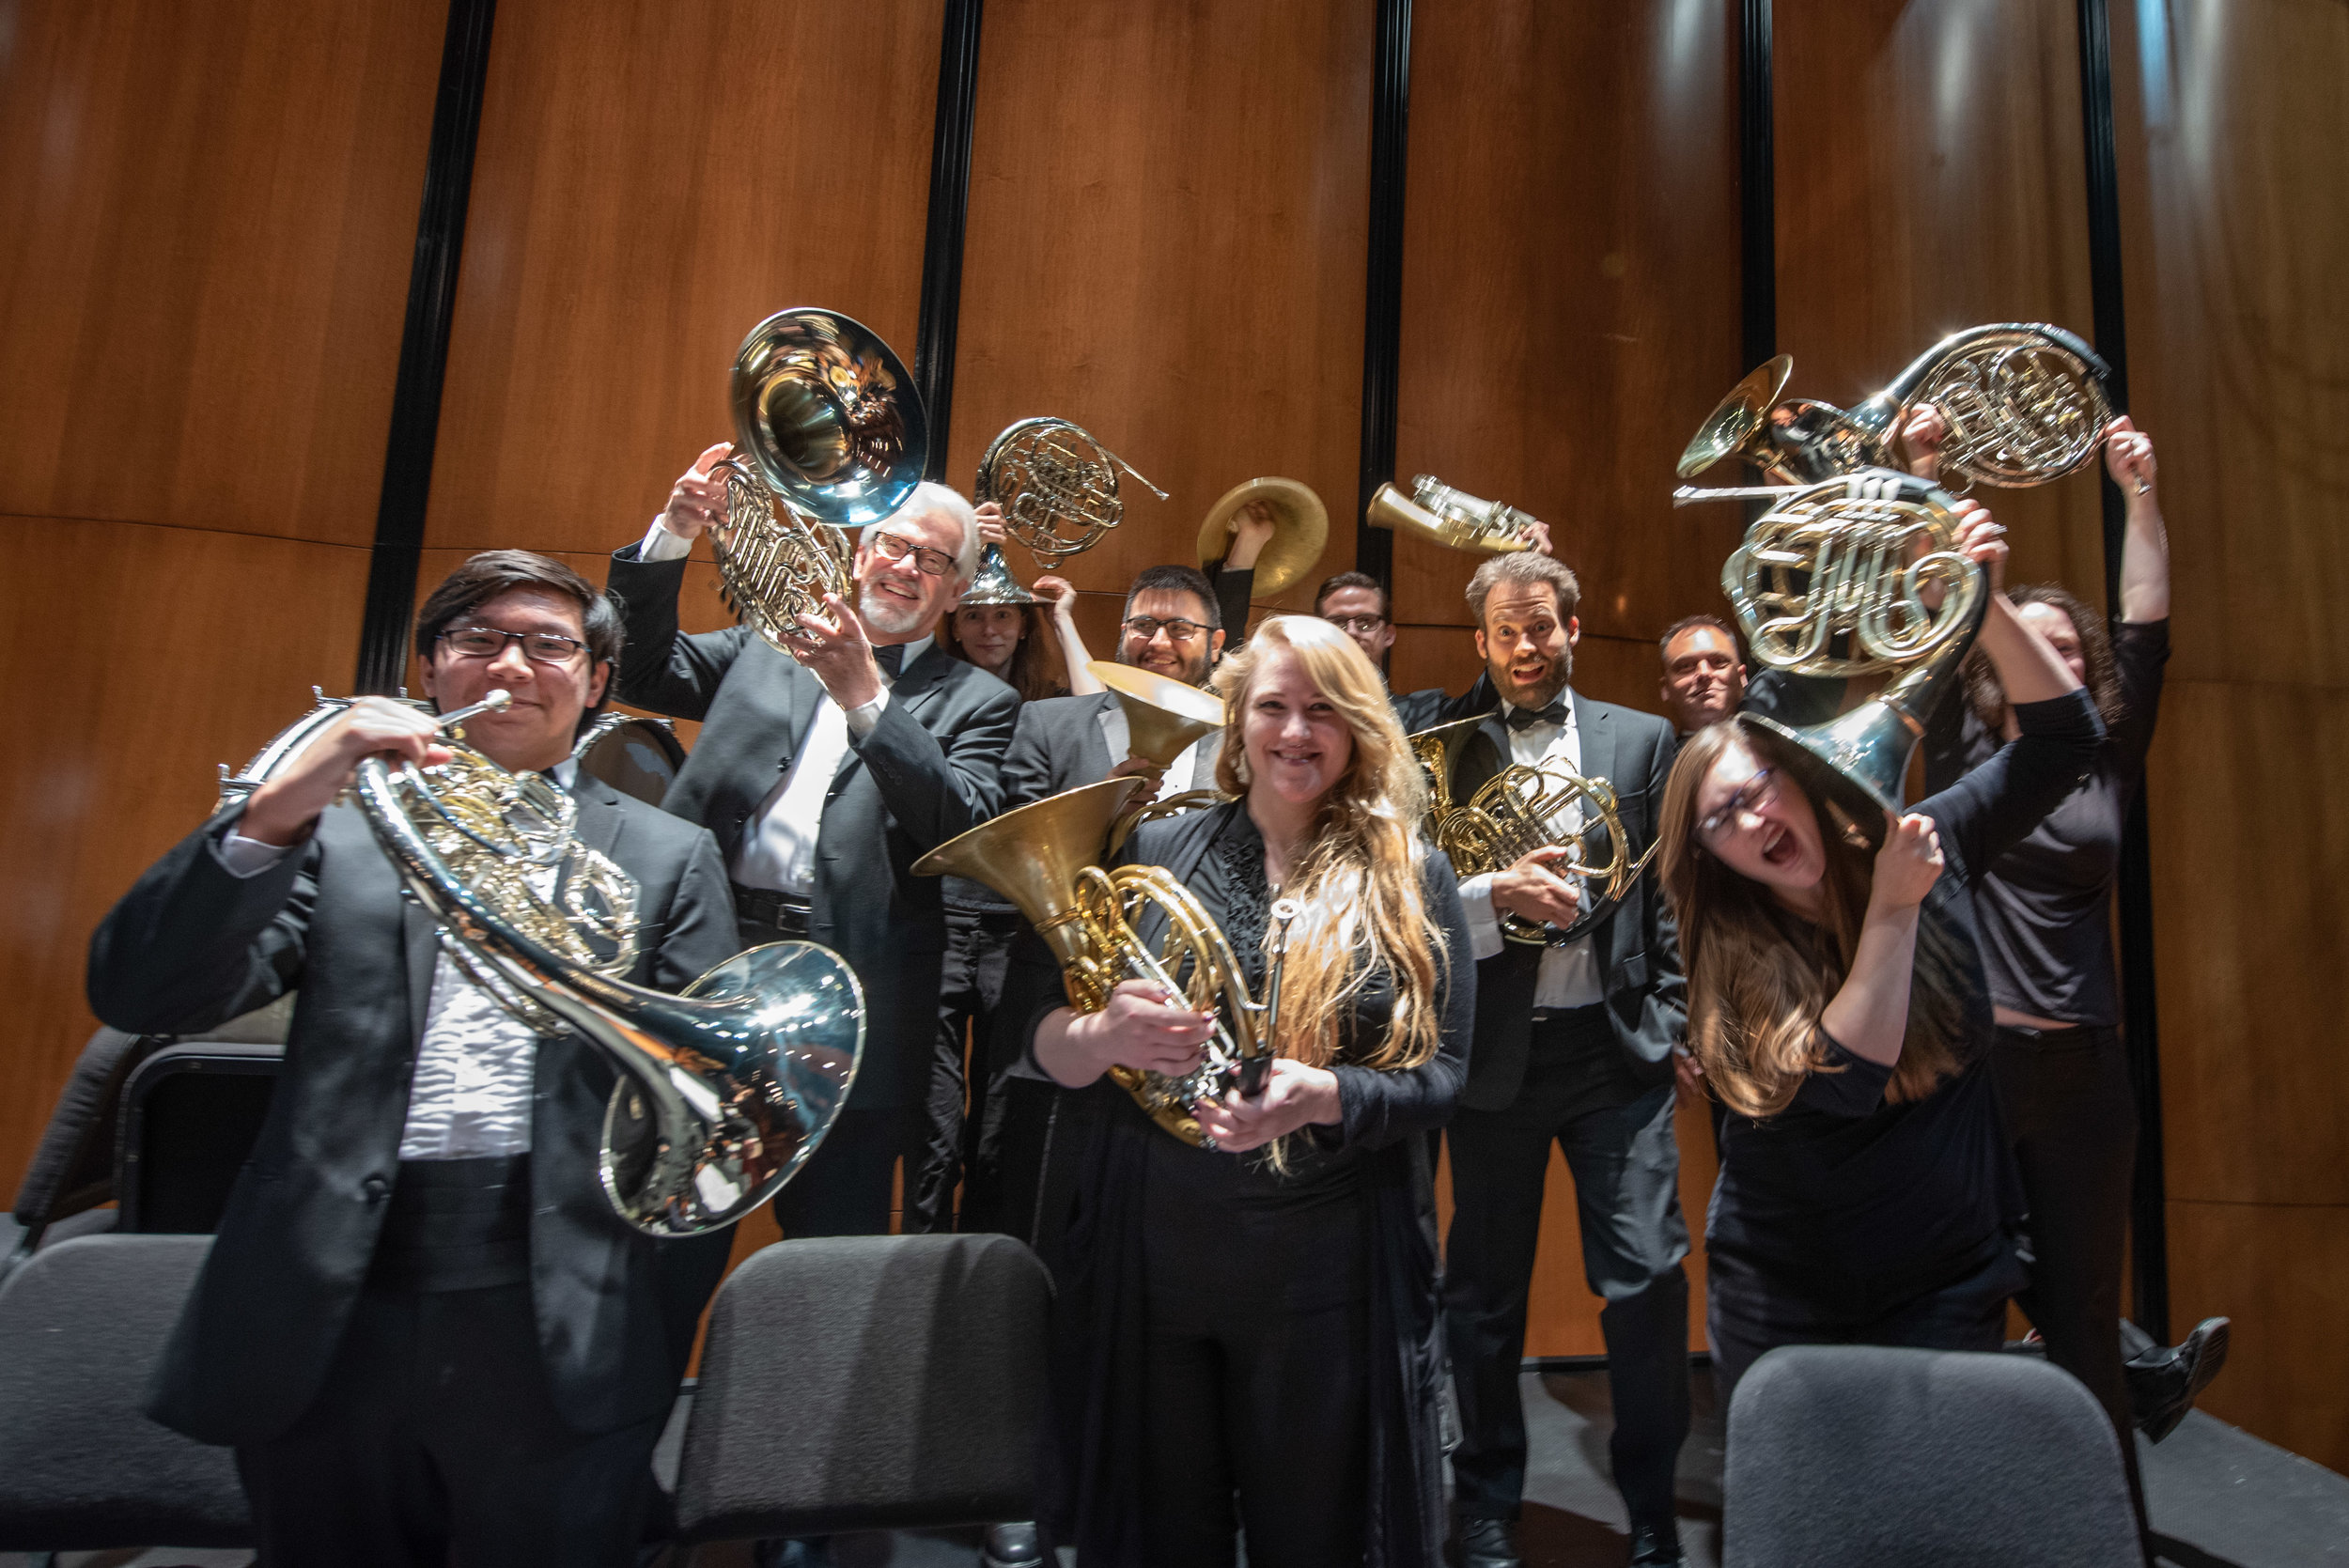 TMCO french horns having some fun after performing Mahler Symphony No. 3.